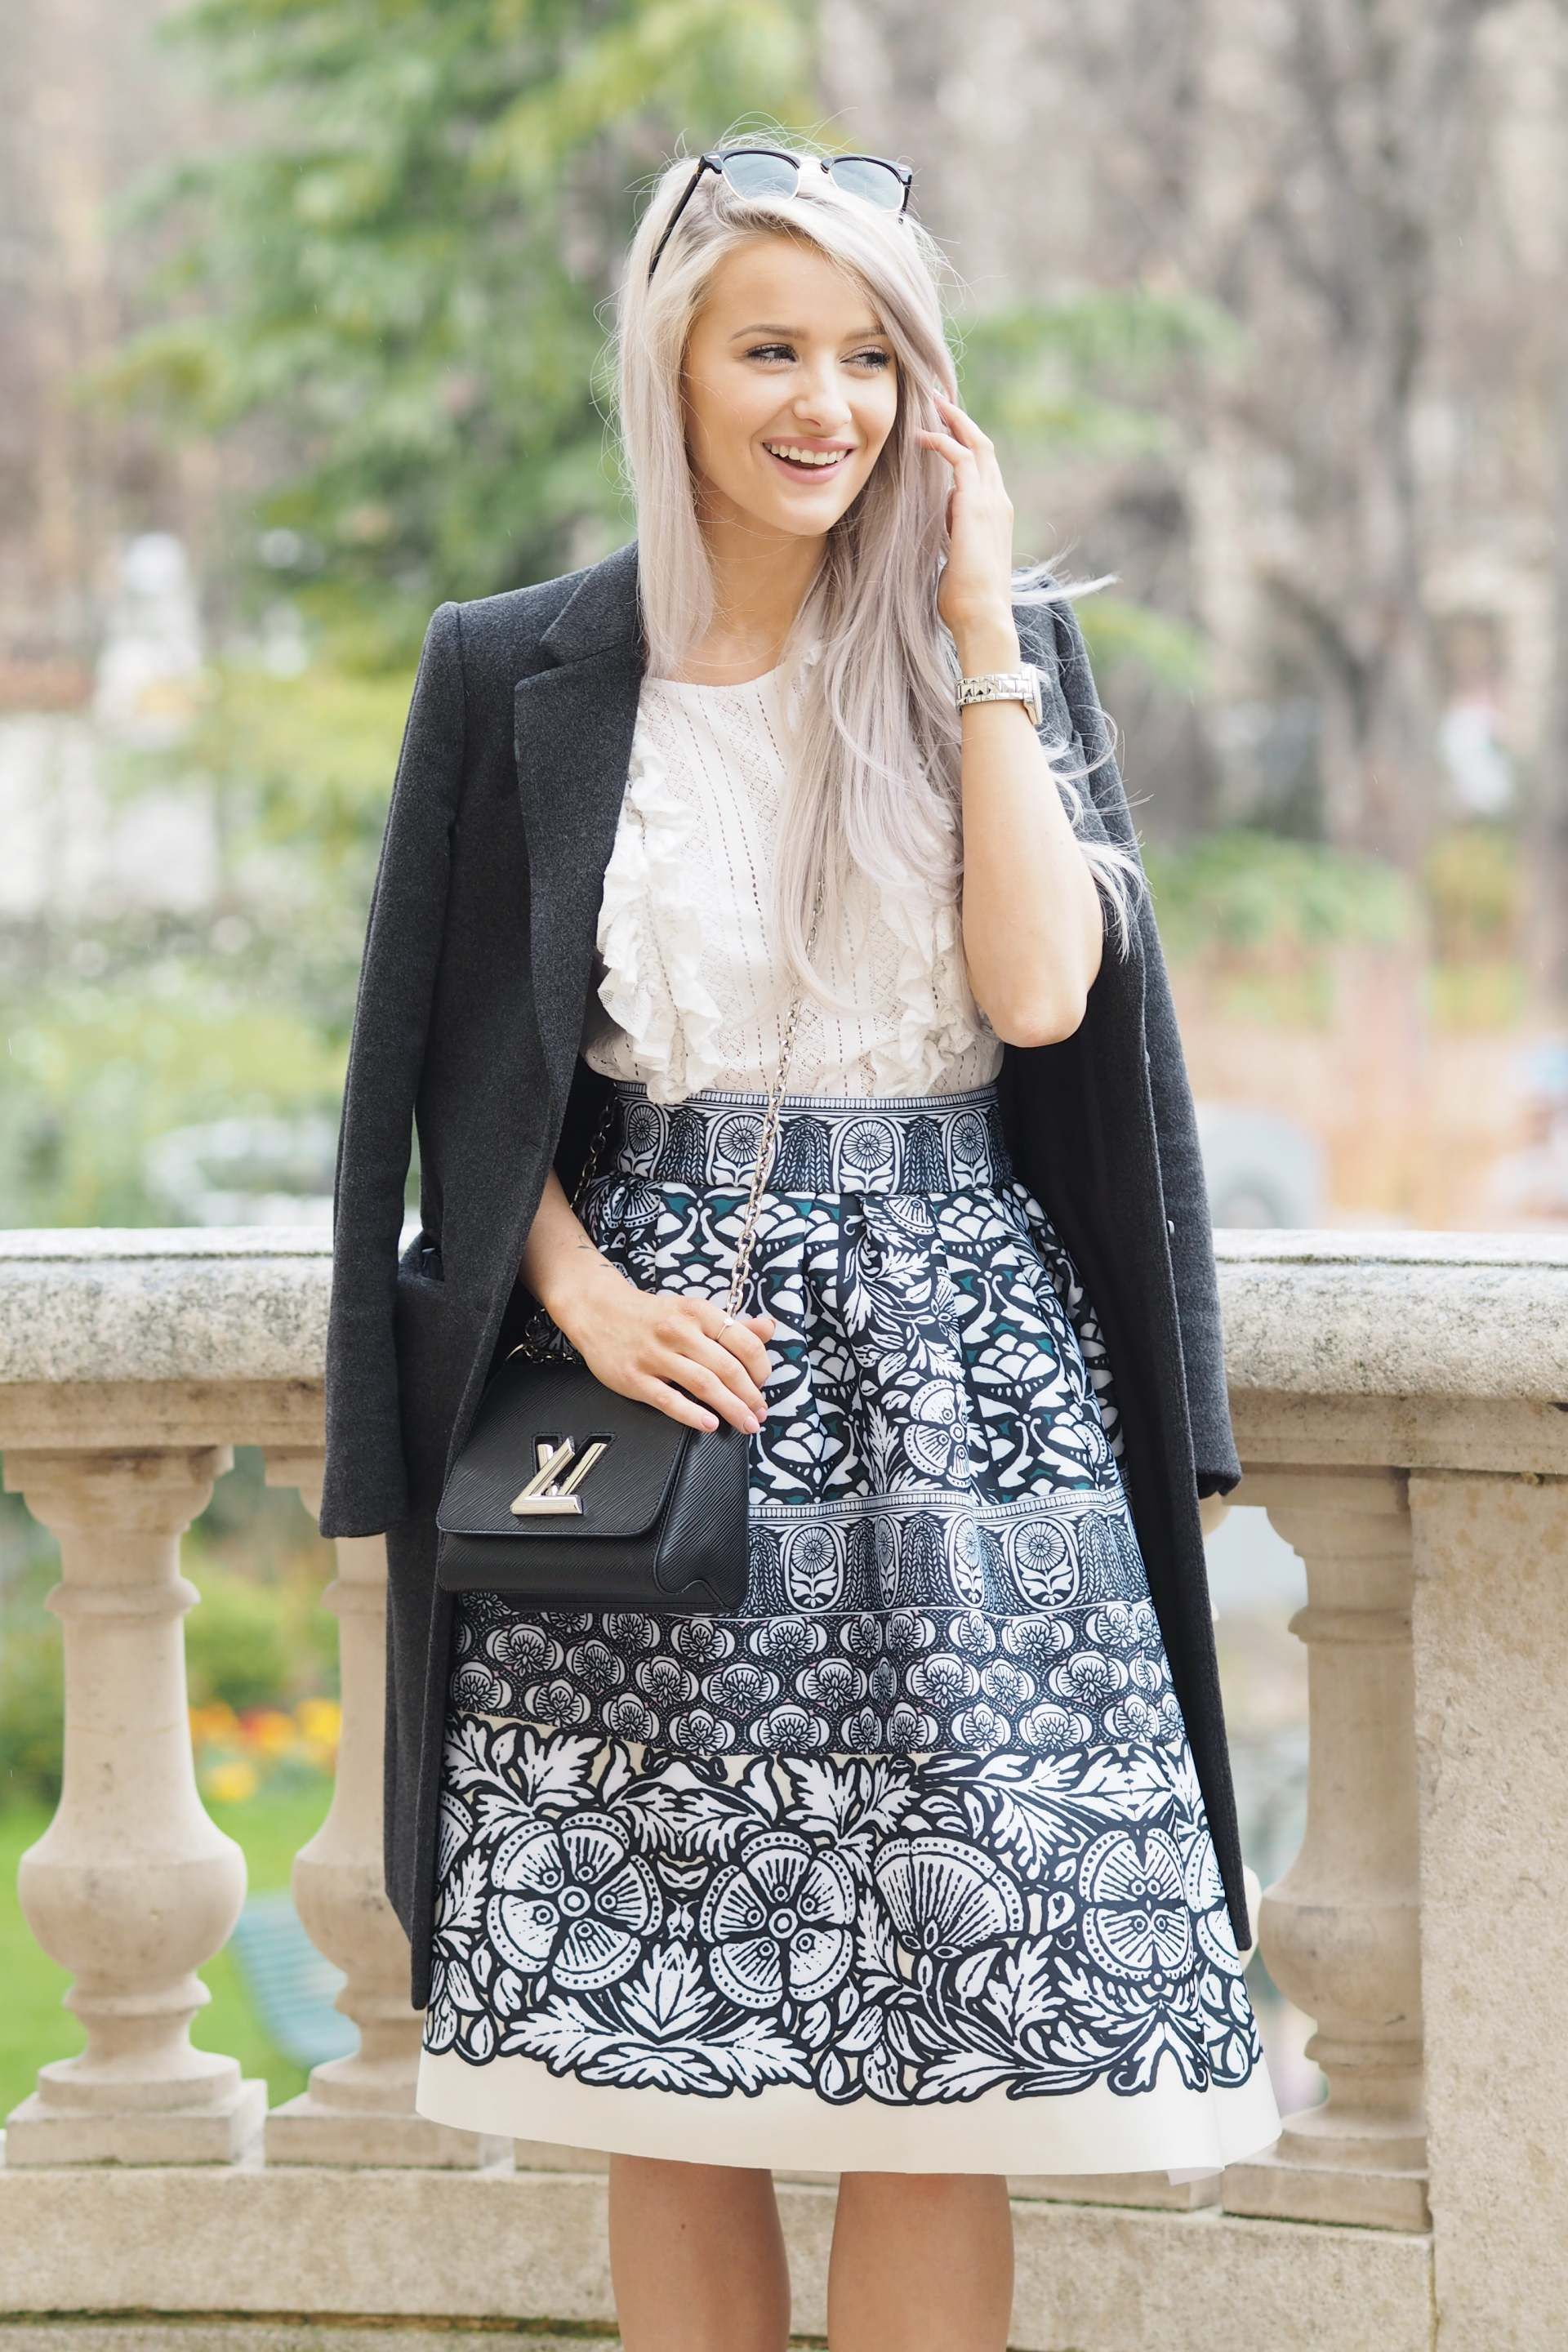 d9f4a9c08f89 inthefrow paris fashion week in maje and louis vuitton and gianvito rossi  caged ankle heels